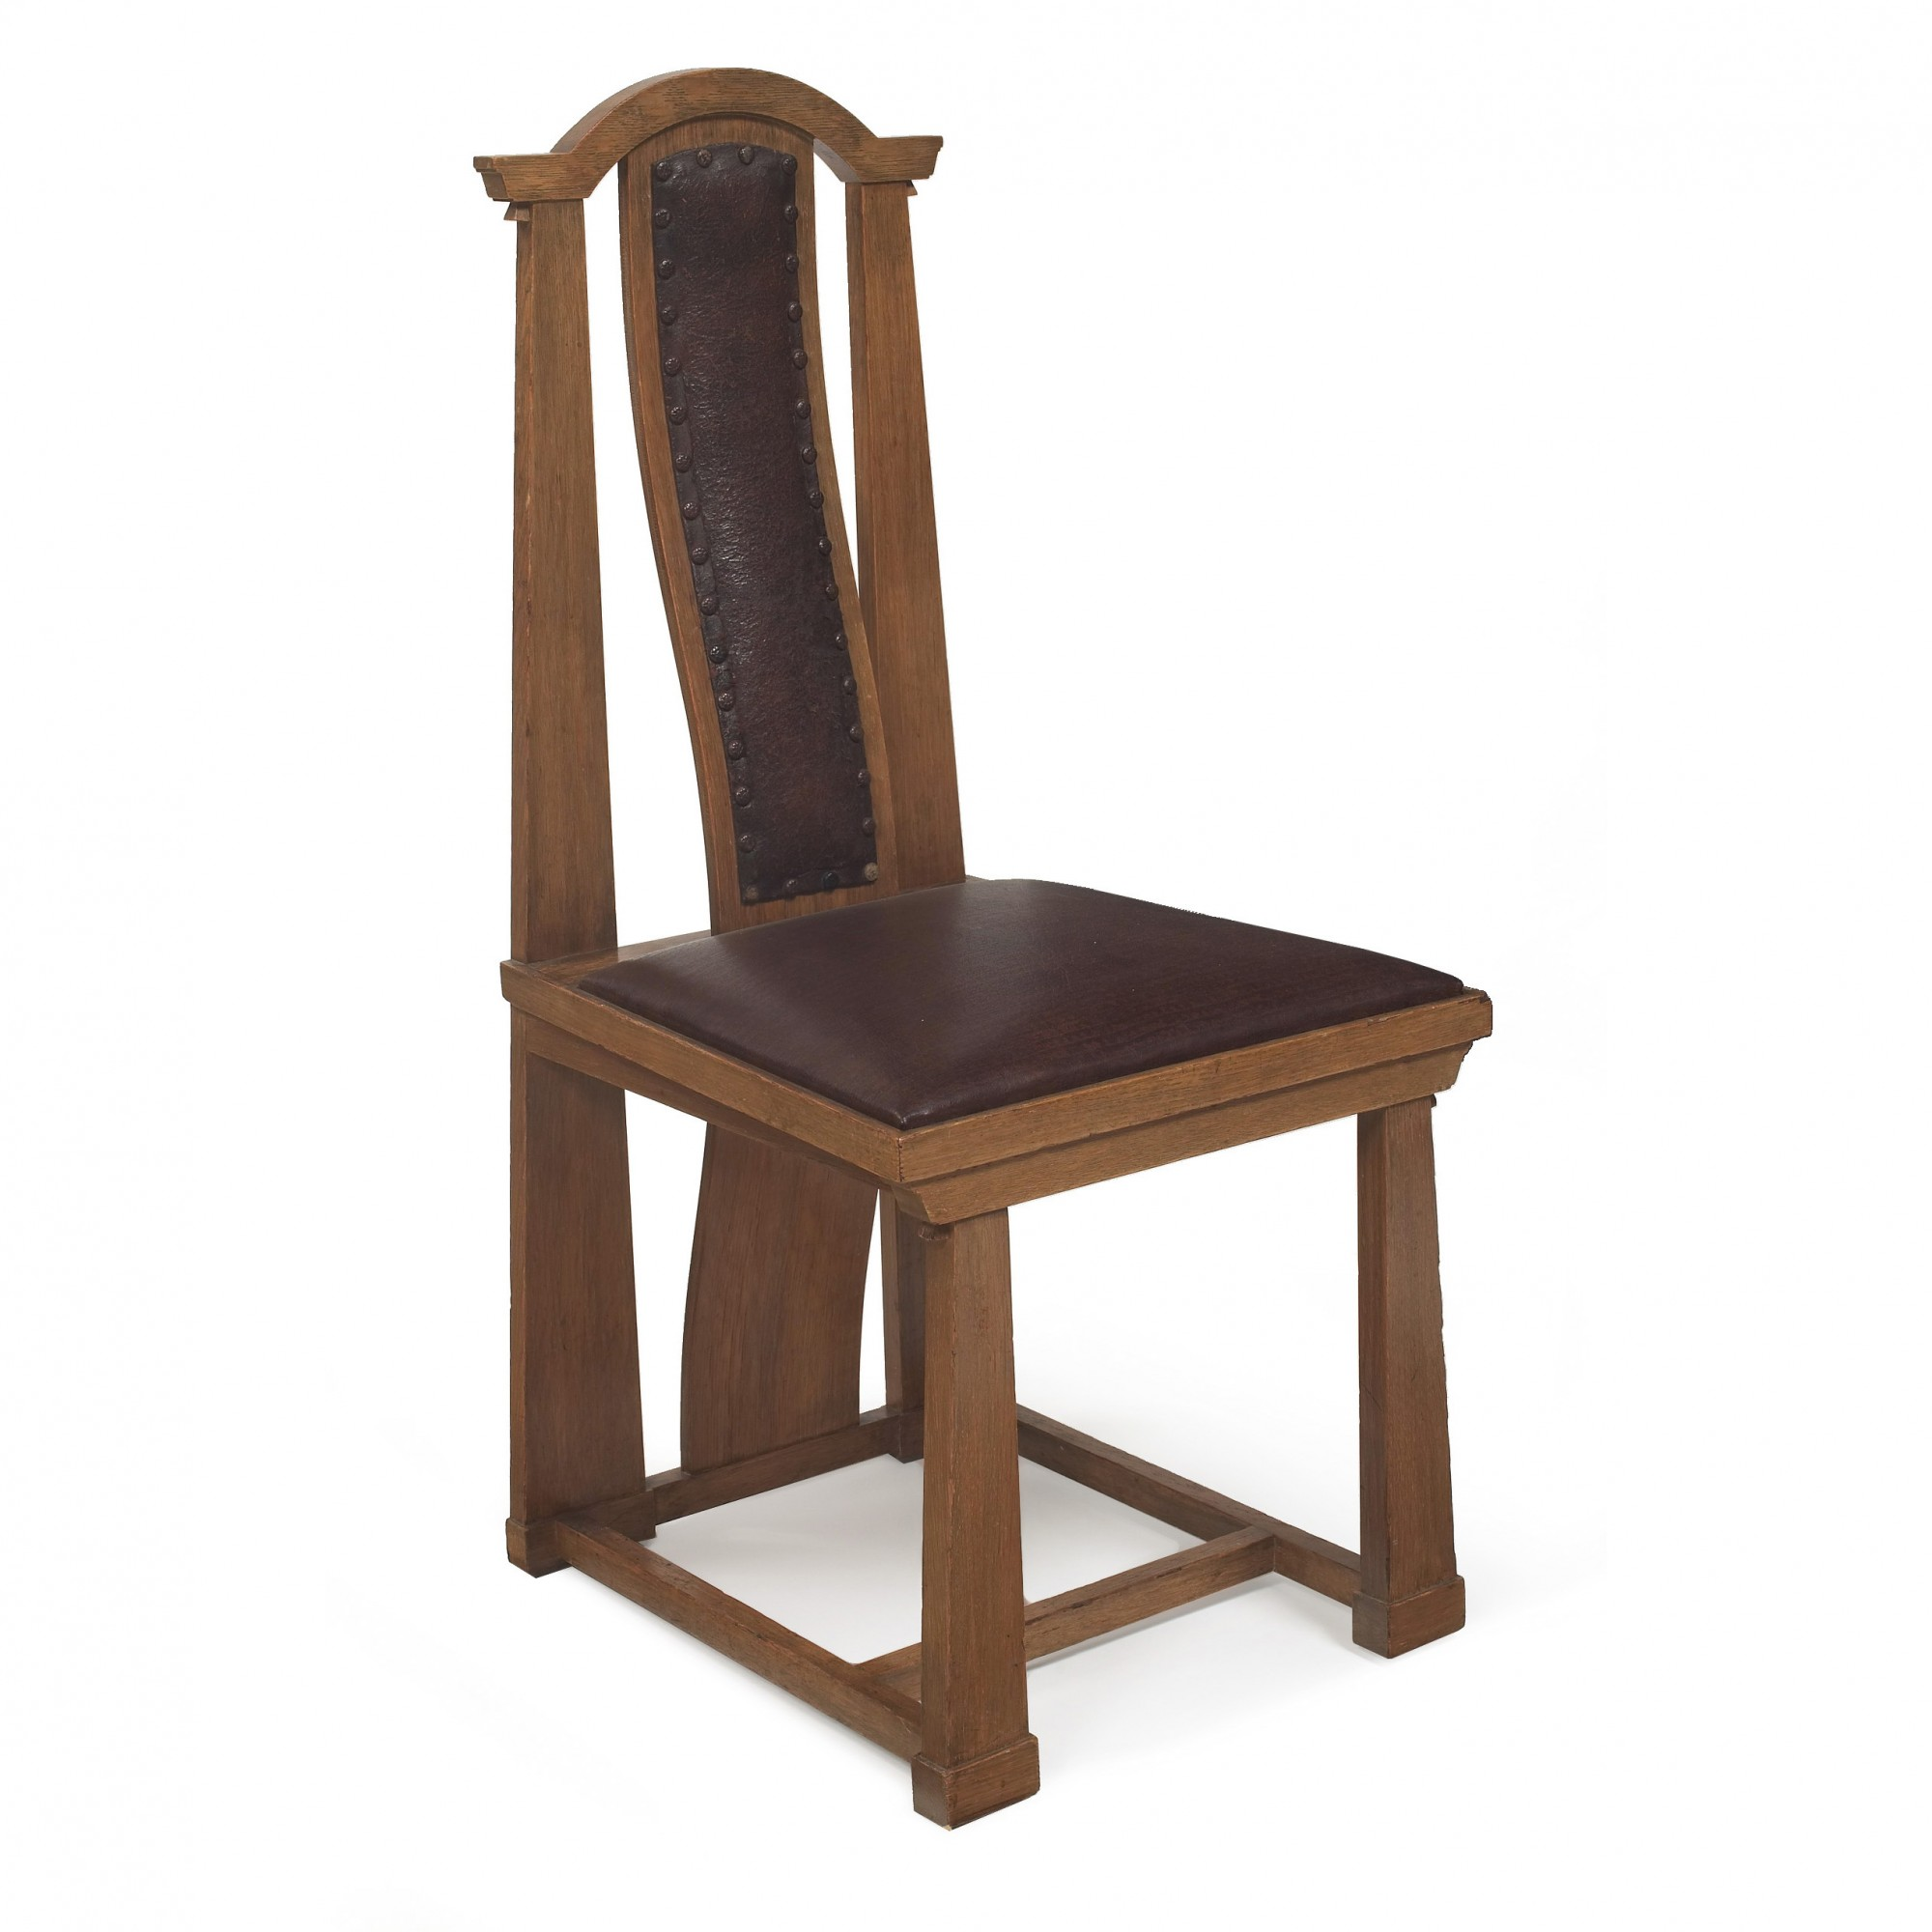 George Washington Maher Dining Chair